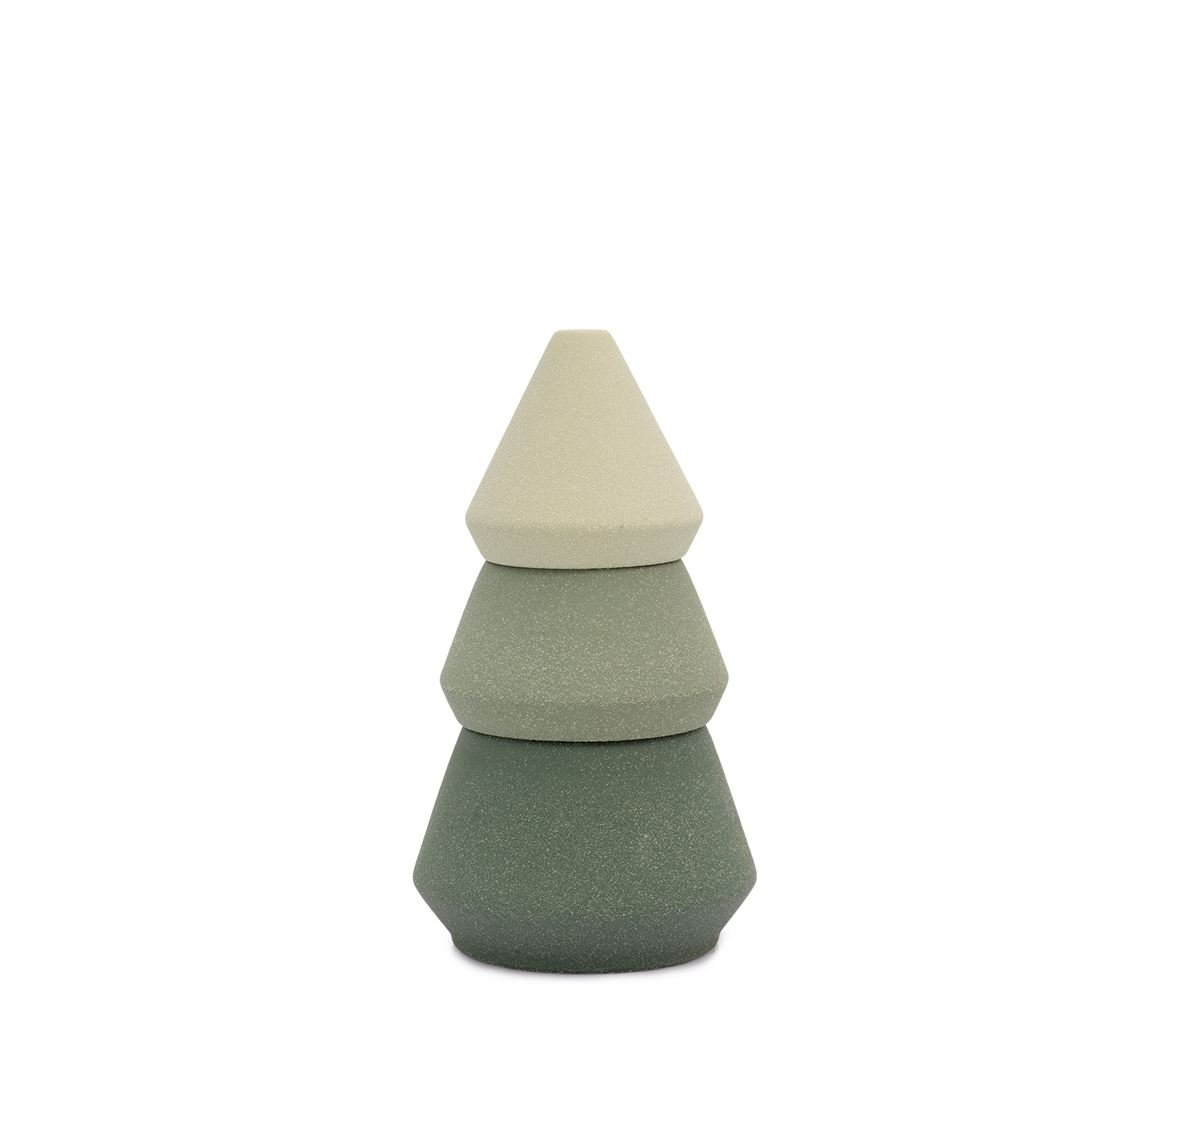 CYPRESS & FIR 16 OZ (10.5 + 5.5 OZ) LARGE GREEN OMBRE SPECKLED TEXTURED CERAMIC TREE STACK